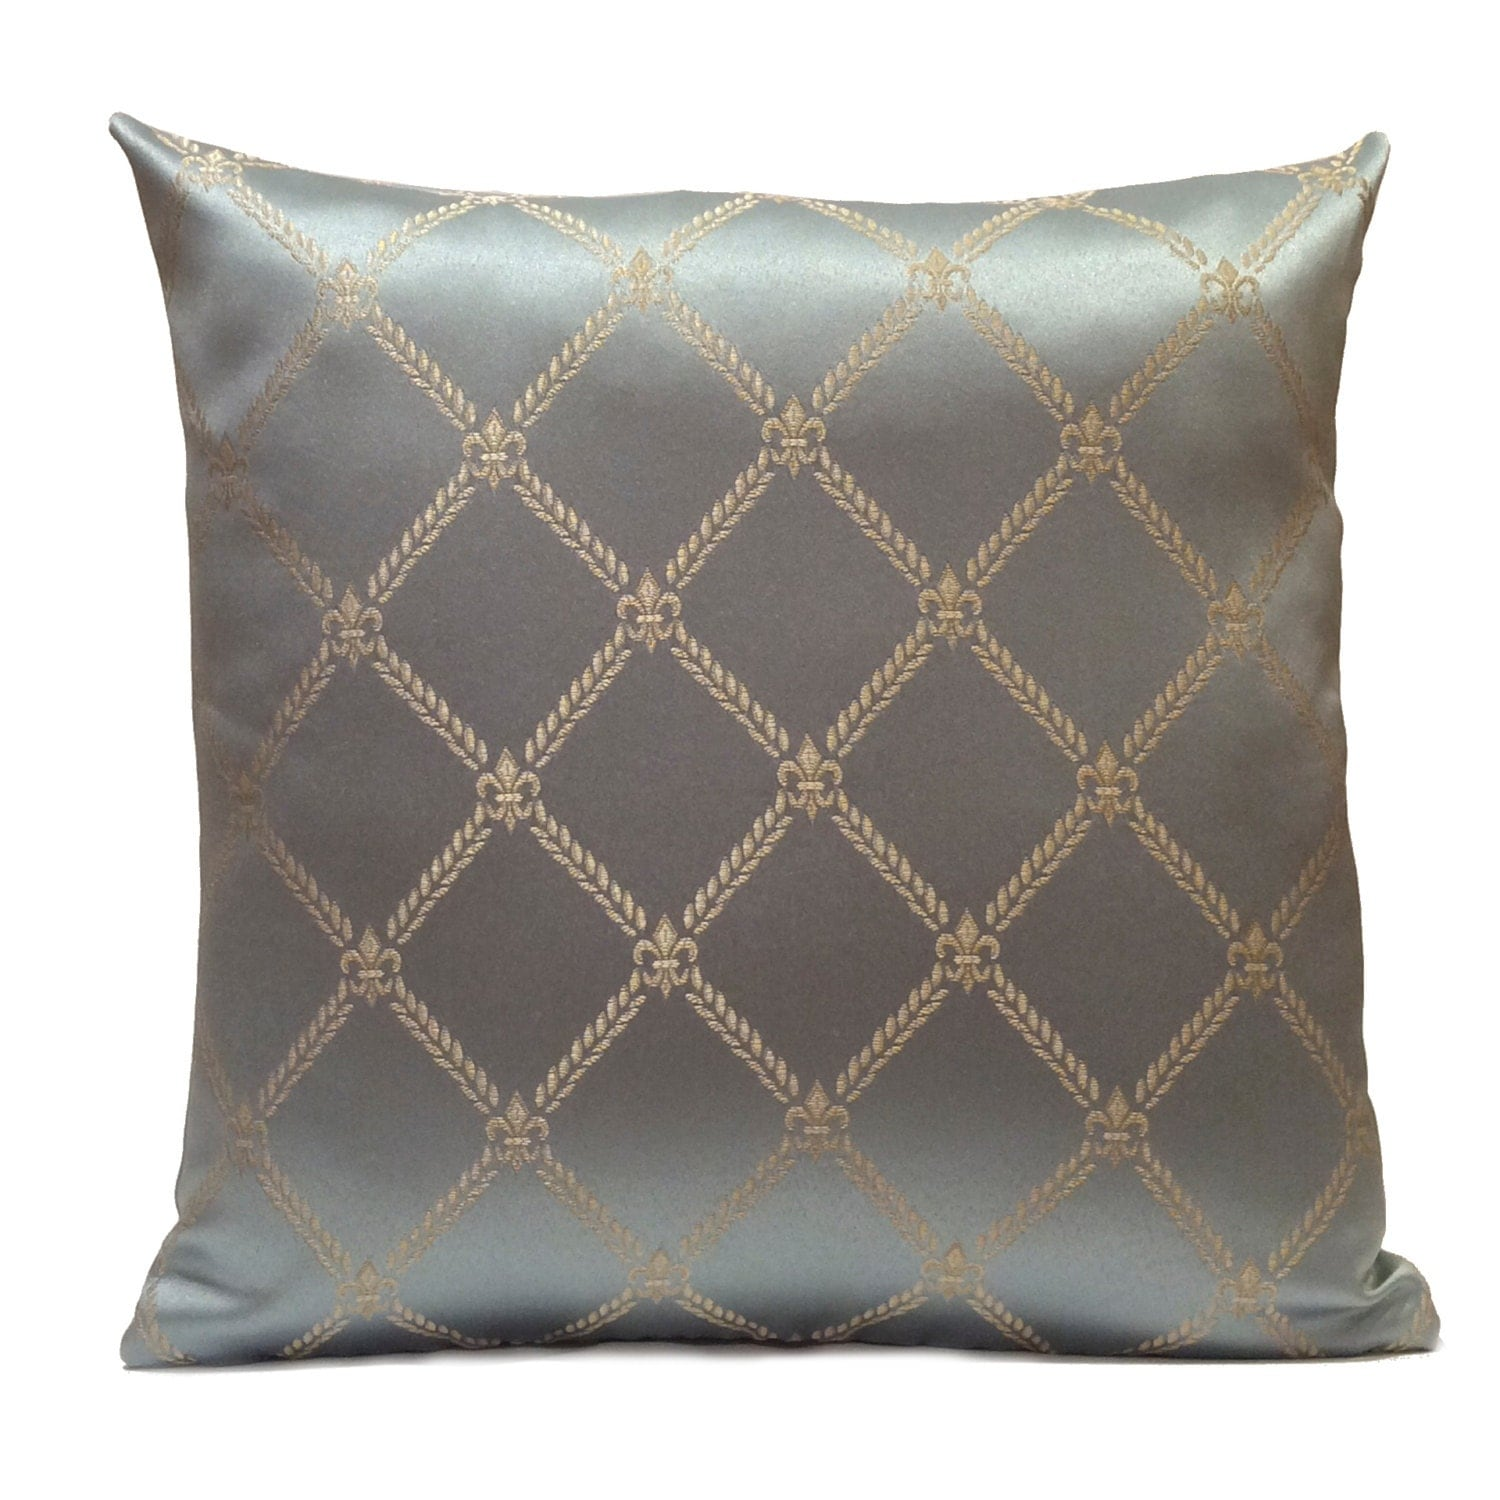 Baby Blue And Brown Throw Pillows : Baby Blue Pillow Throw Pillow Cover Decorative Pillow Cover